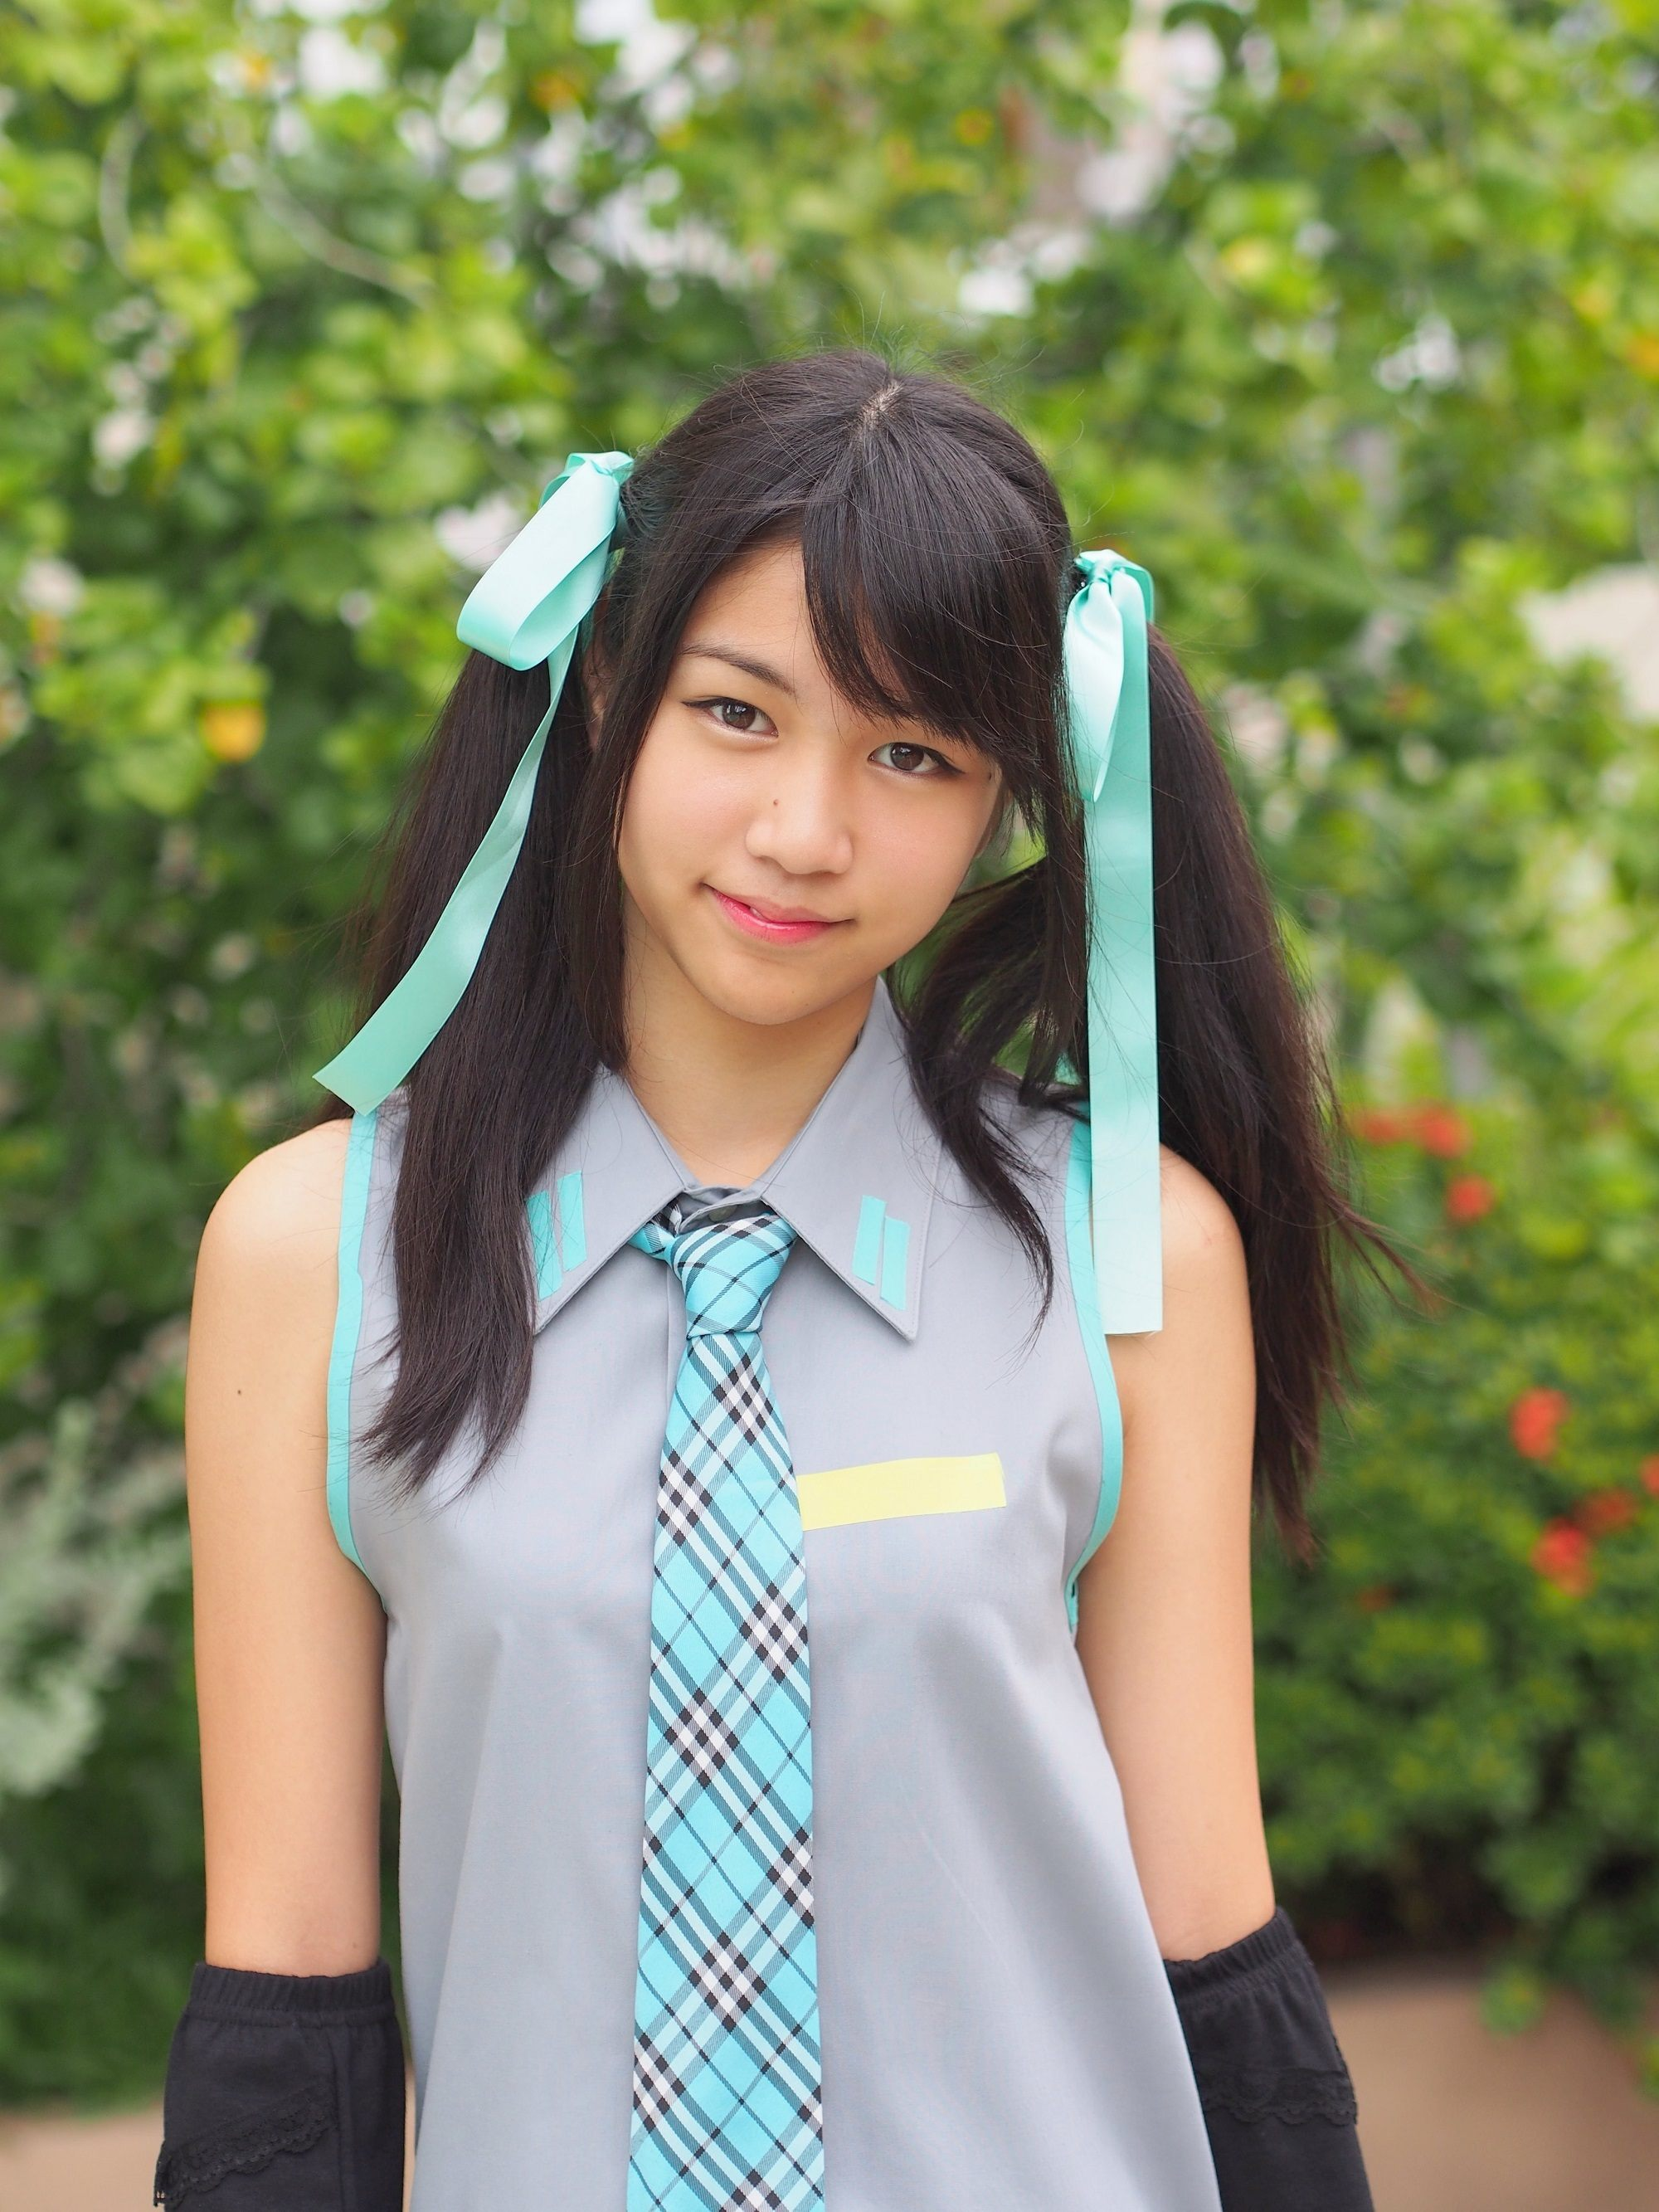 Kawaii hairstyles: Girl with long black hair in pigtails wearing a sleeveless polo with necktie